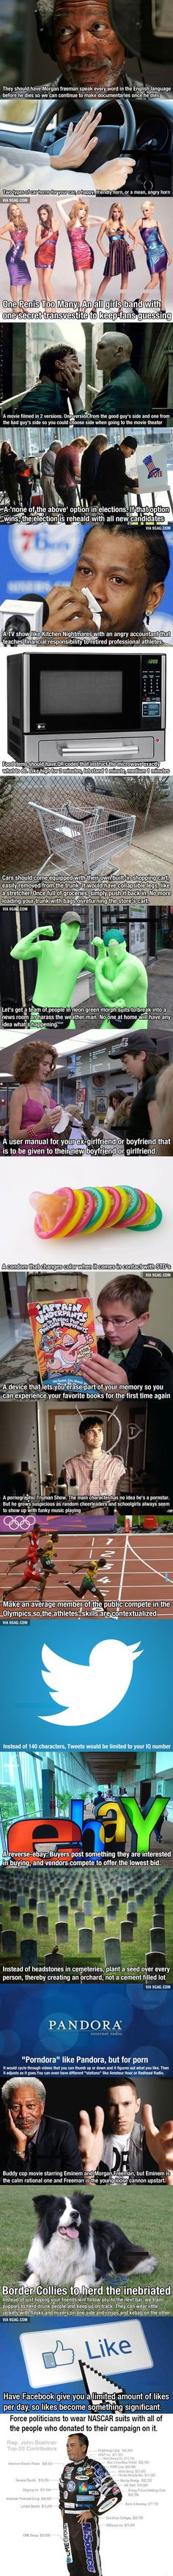 22 Crazy Ideas That Are Borderline Genius